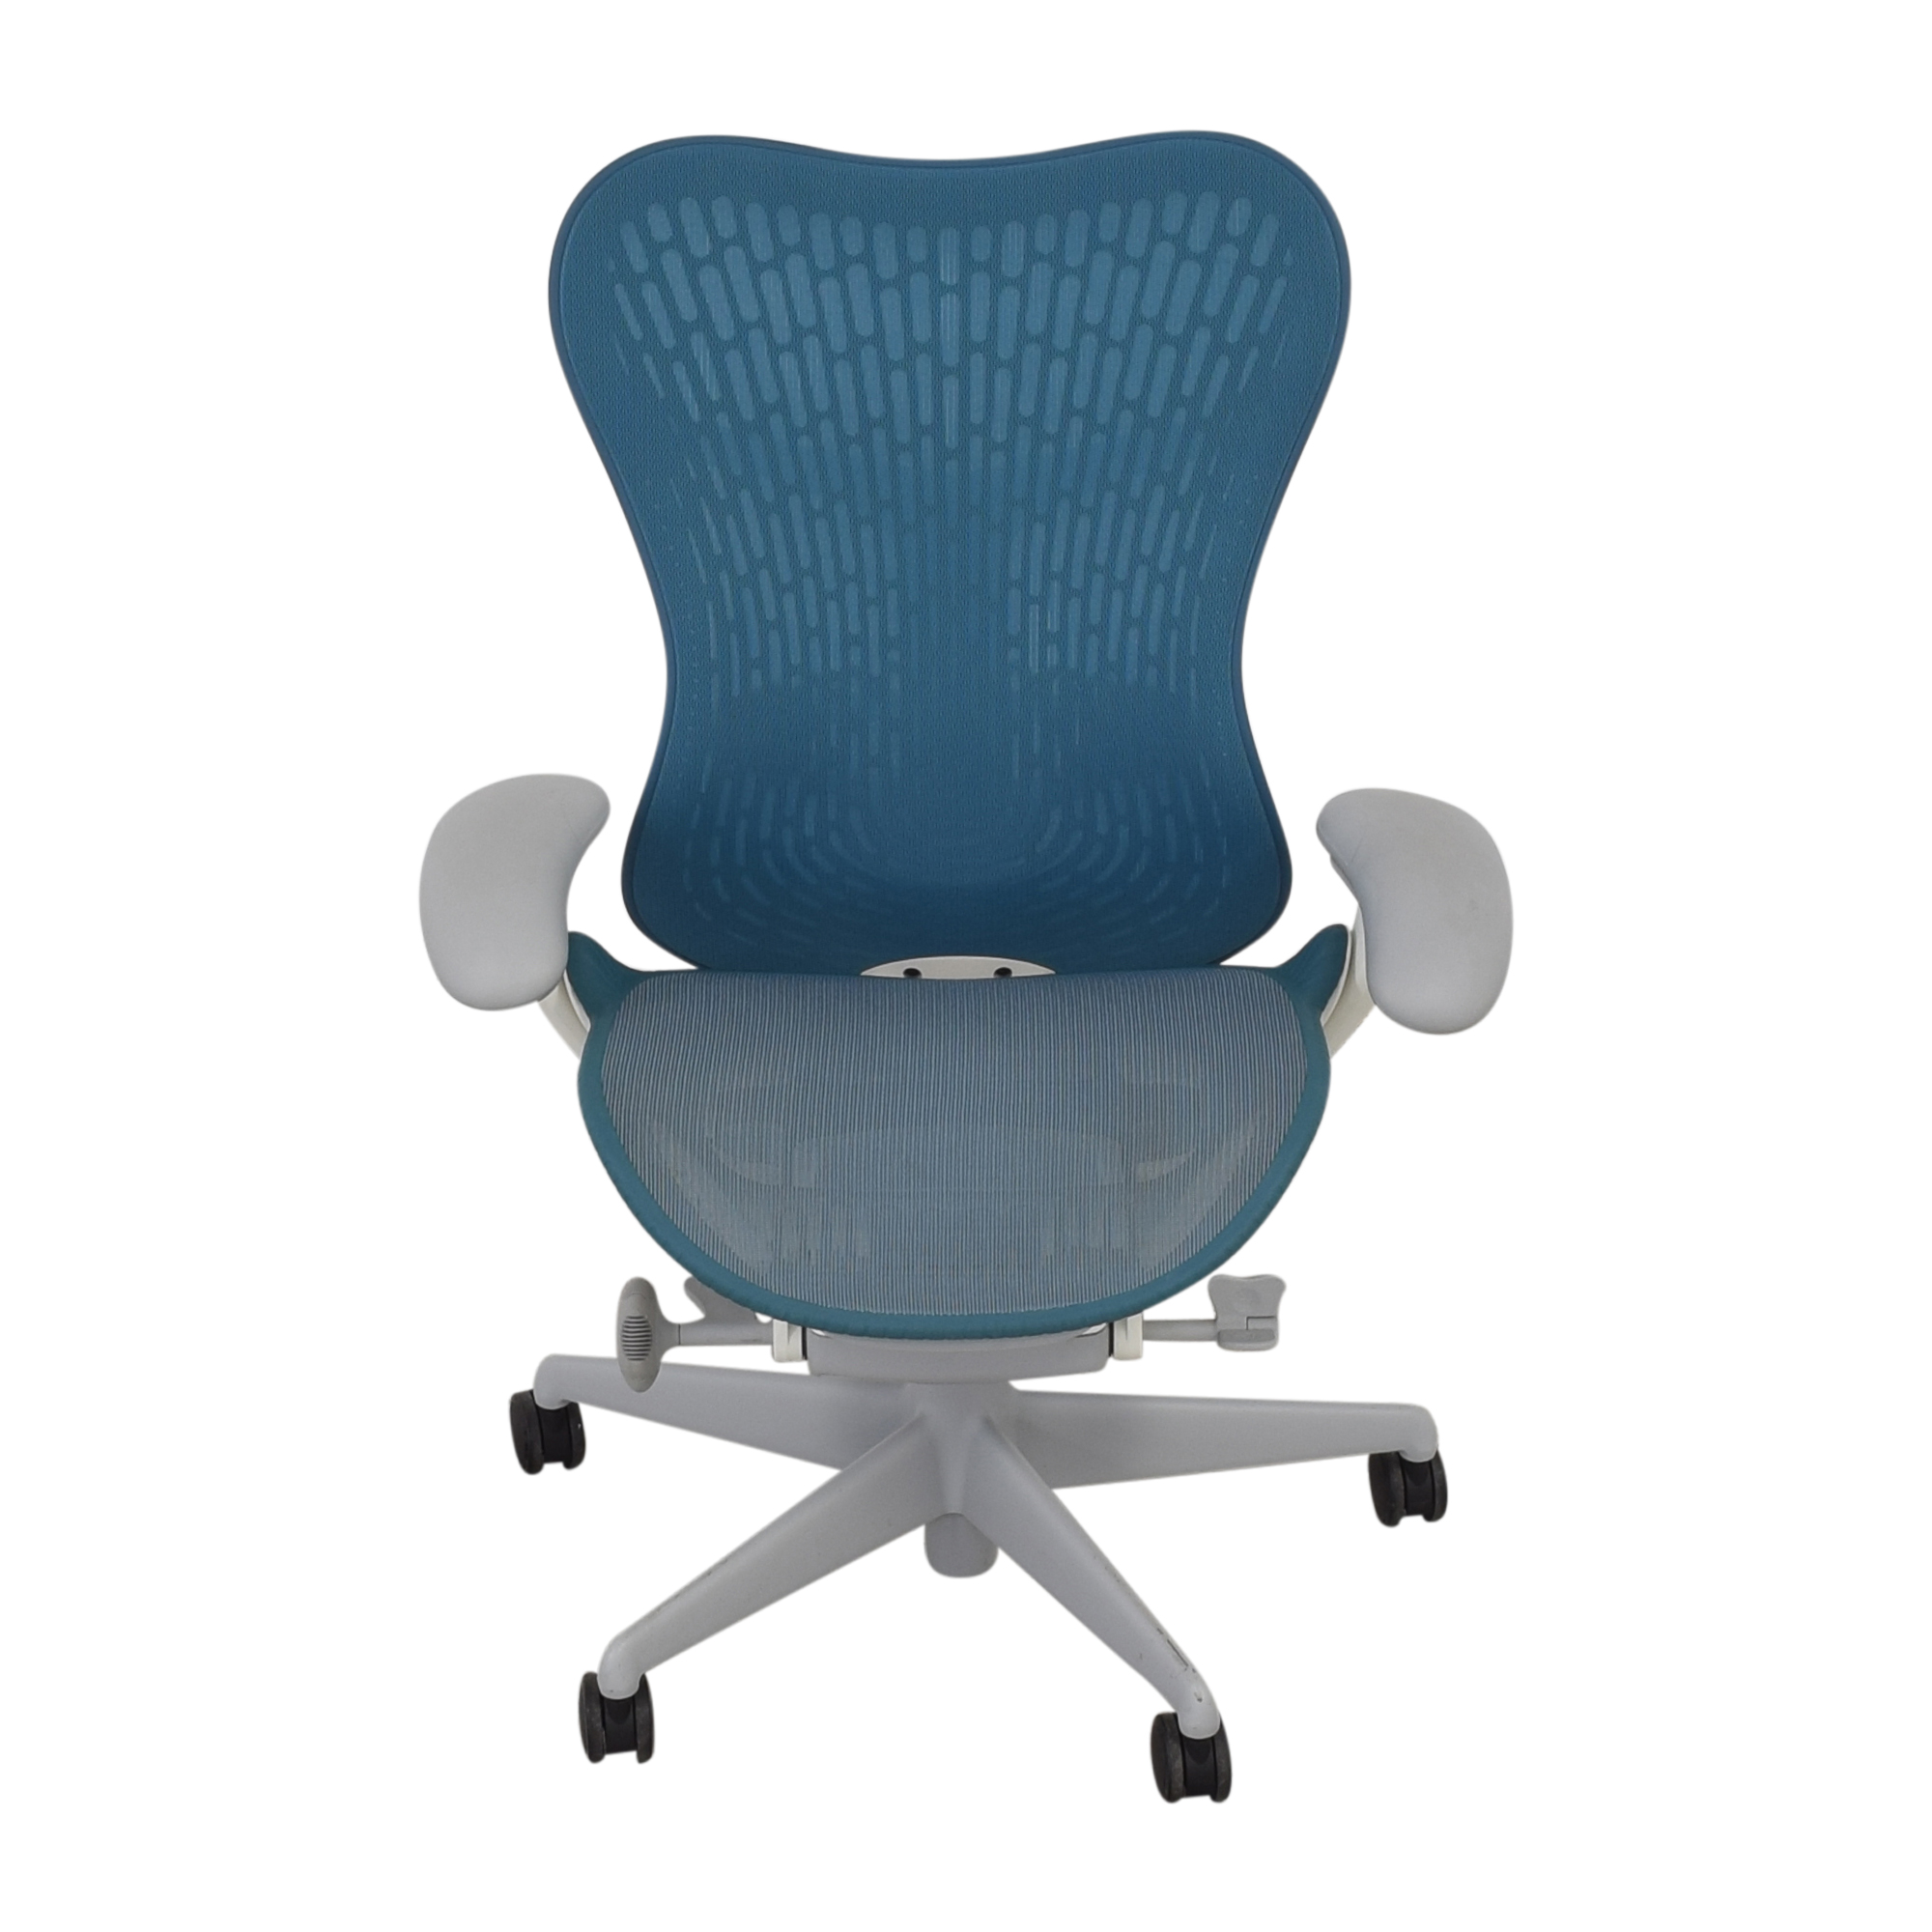 Herman Miller Herman Miller Mirra Chair coupon